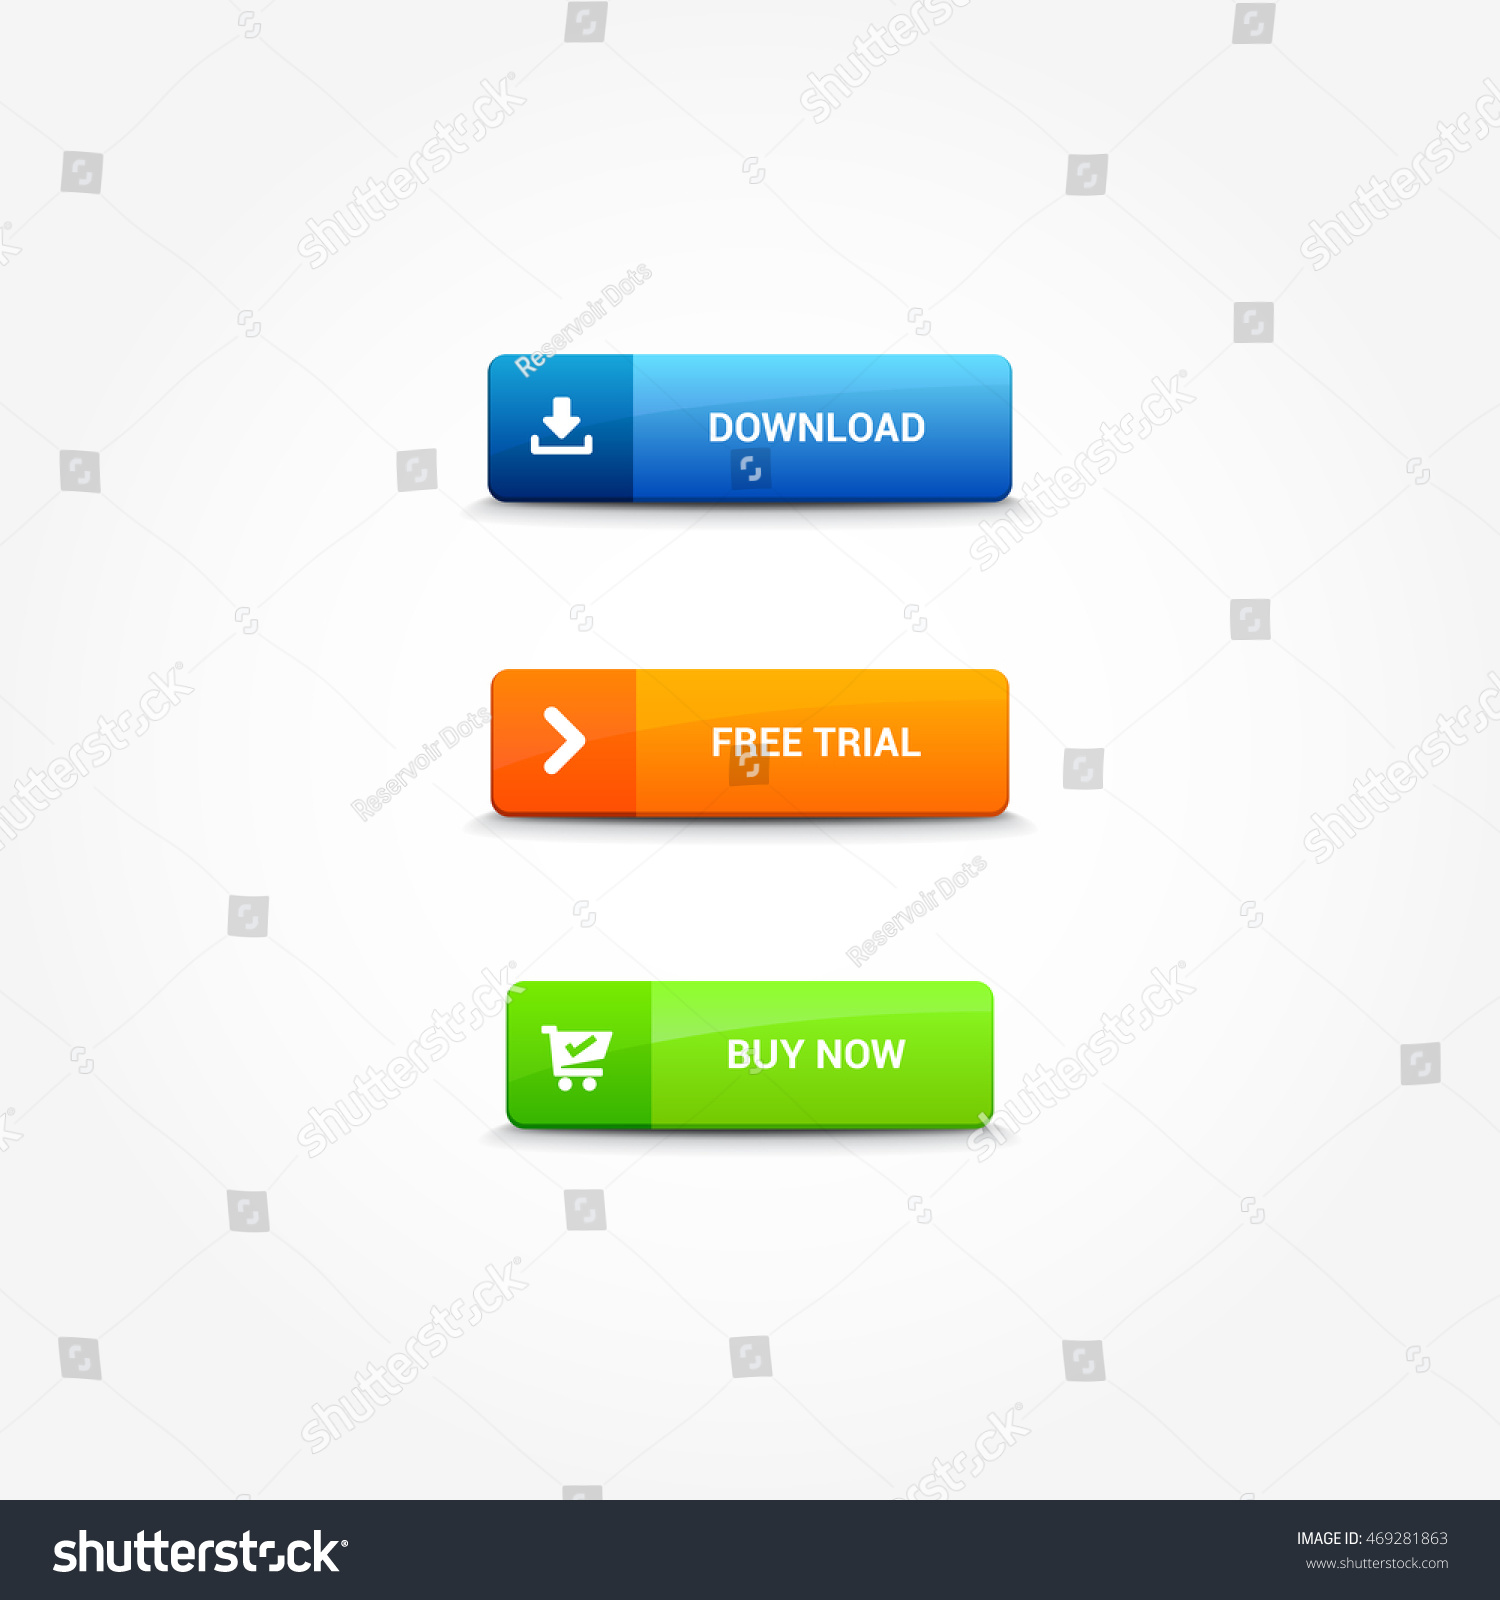 Download free trial buy now buttons stock vector (royalty free.